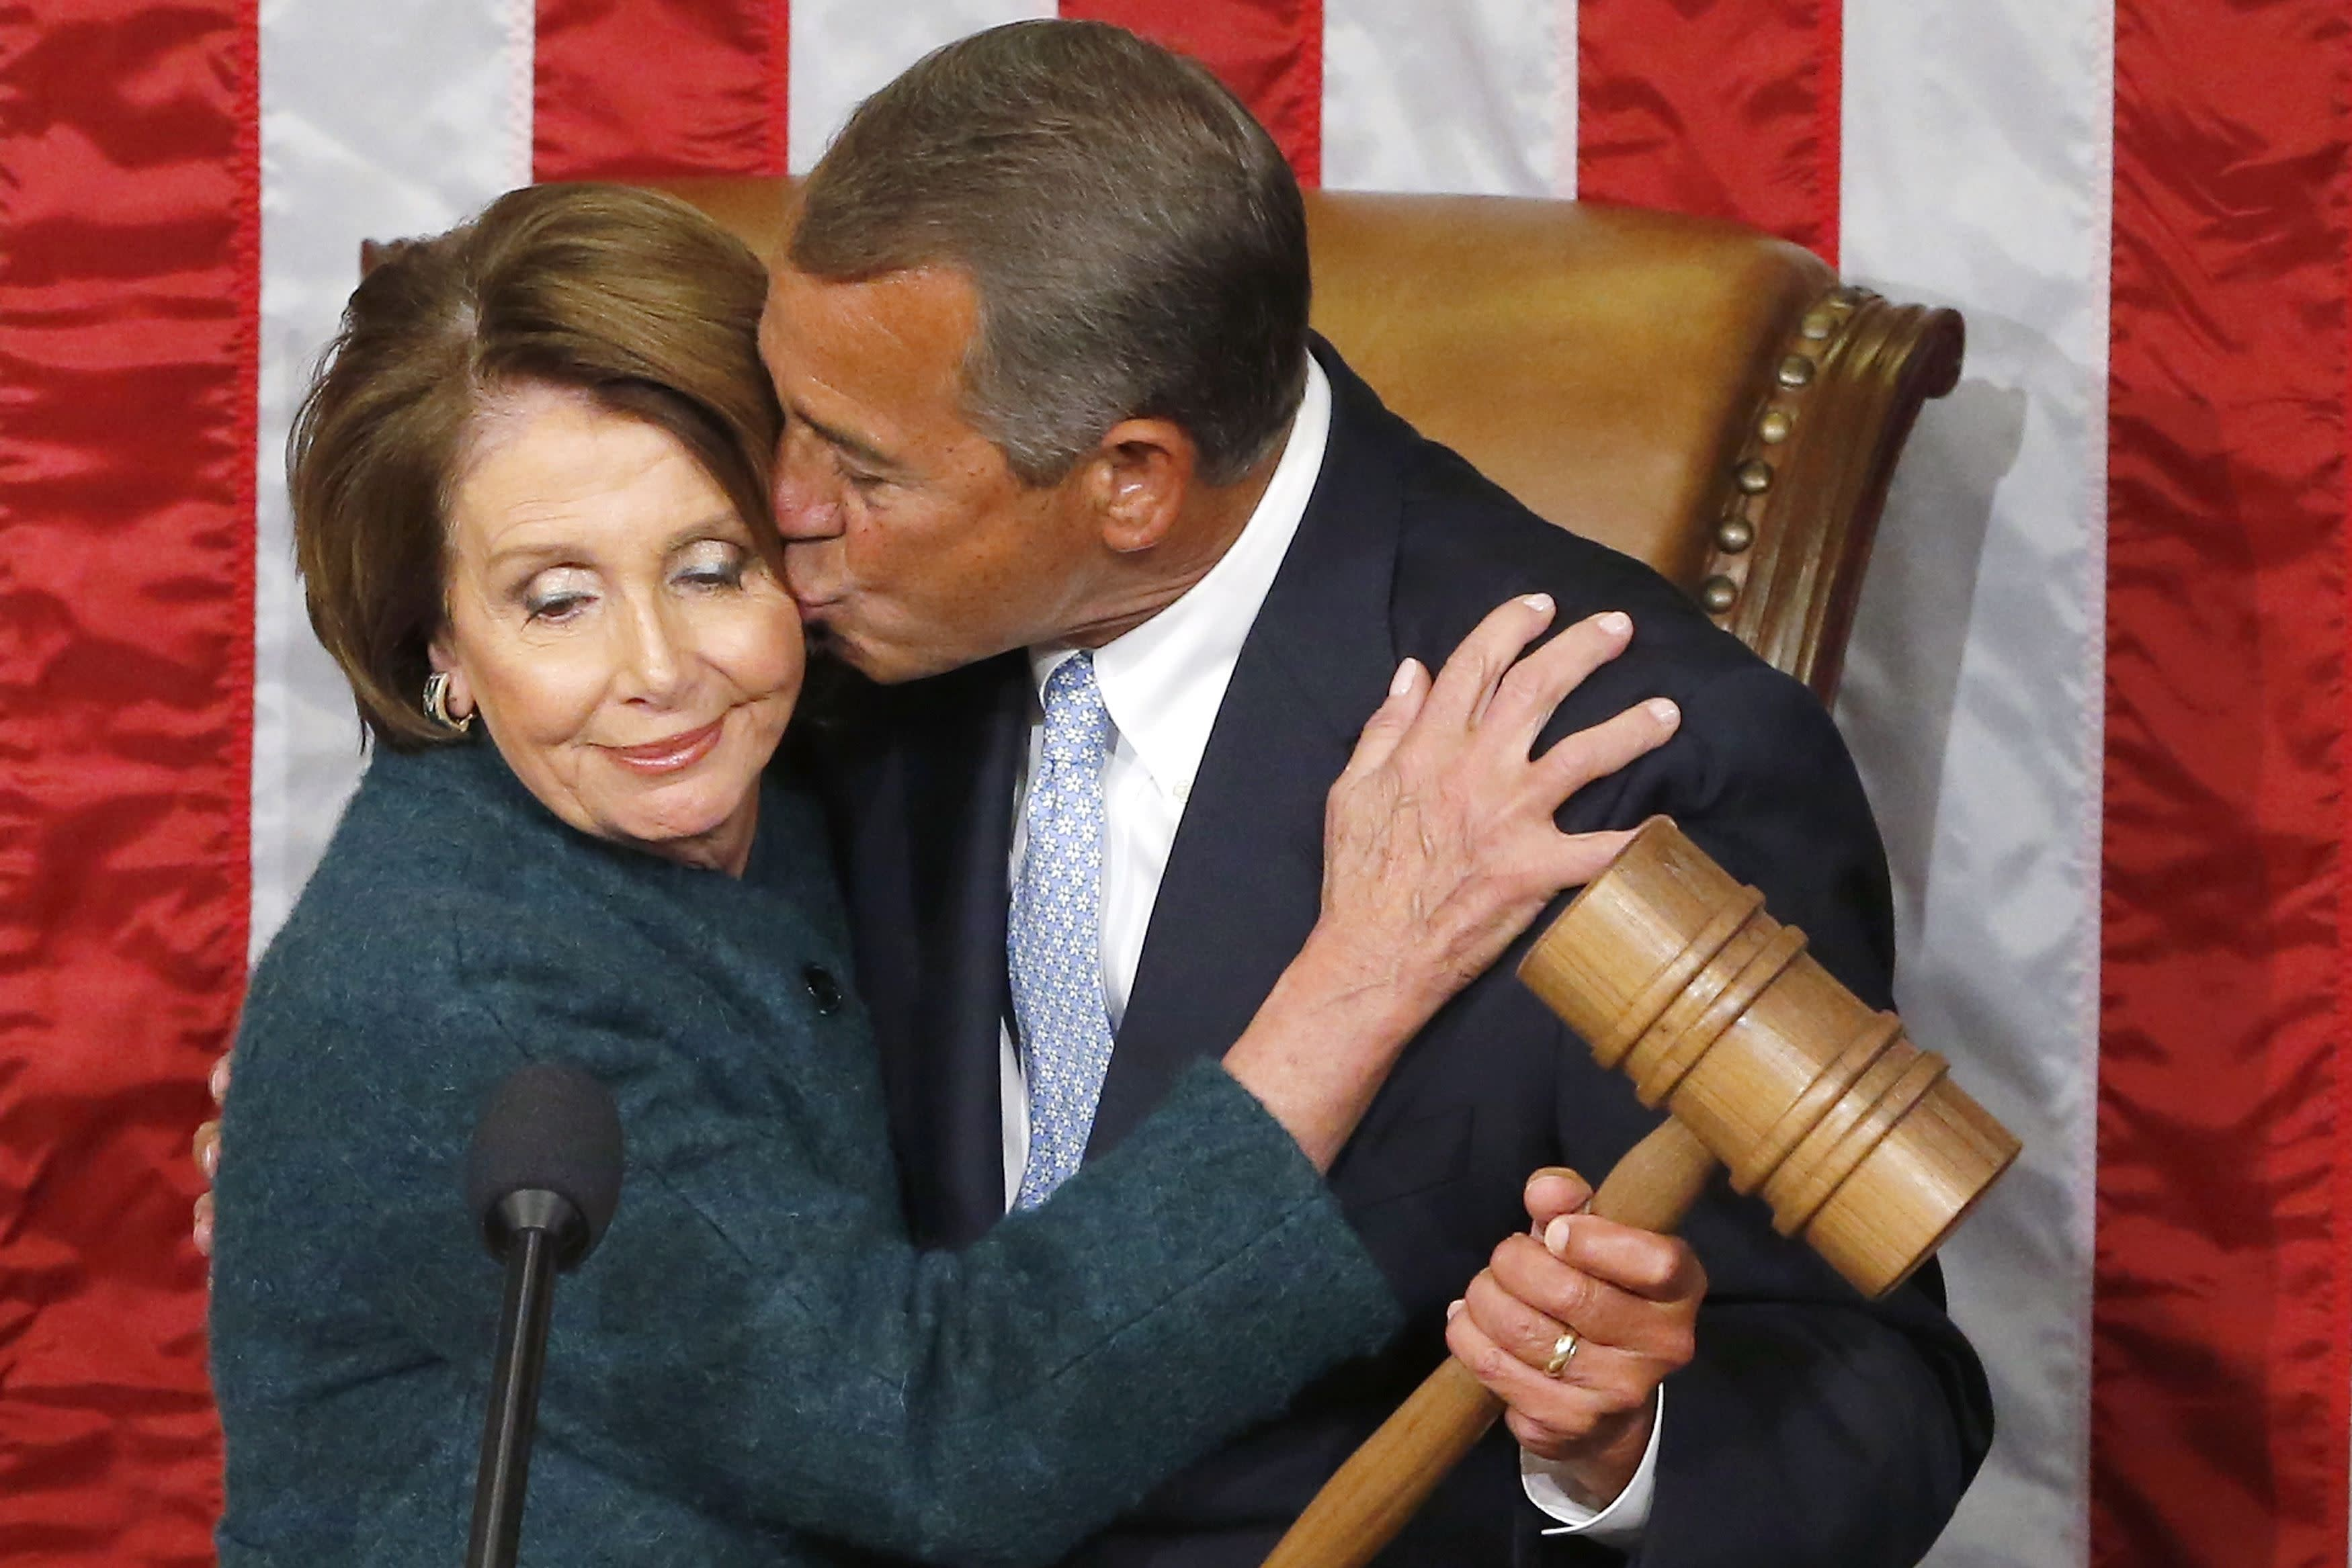 U.S. House Speaker John Boehner (R-OH) (R) kisses House Minority Leader Nancy Pelosi (D-CA), as he holds the gavel after being re-elected speaker on the House floor at the U.S. Capitol in Washington January 6, 2015. REUTERS/Jonathan Ernst (UNITED STATES - Tags: POLITICS TPX IMAGES OF THE DAY)